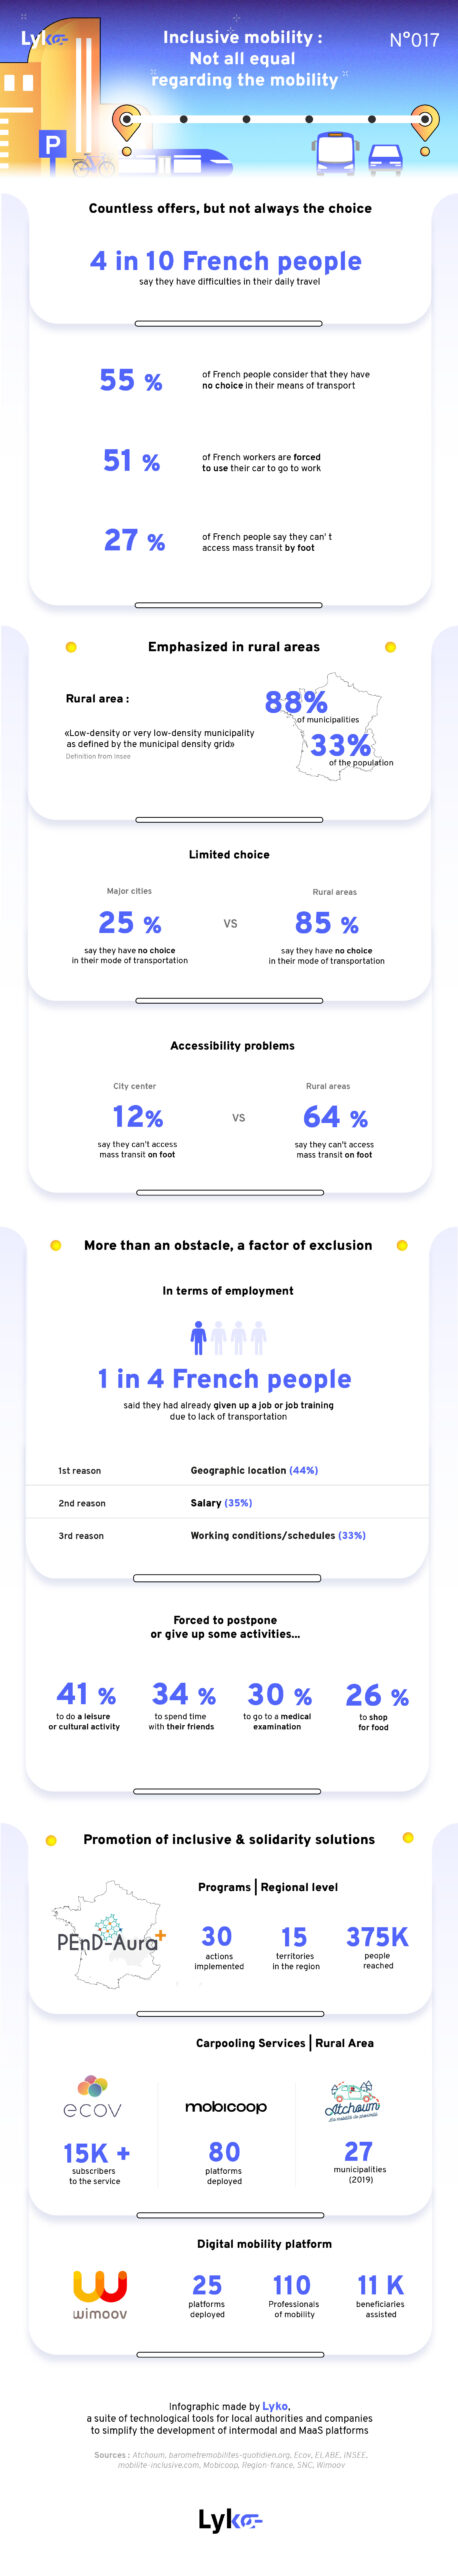 Infographic-inclusive-mobility